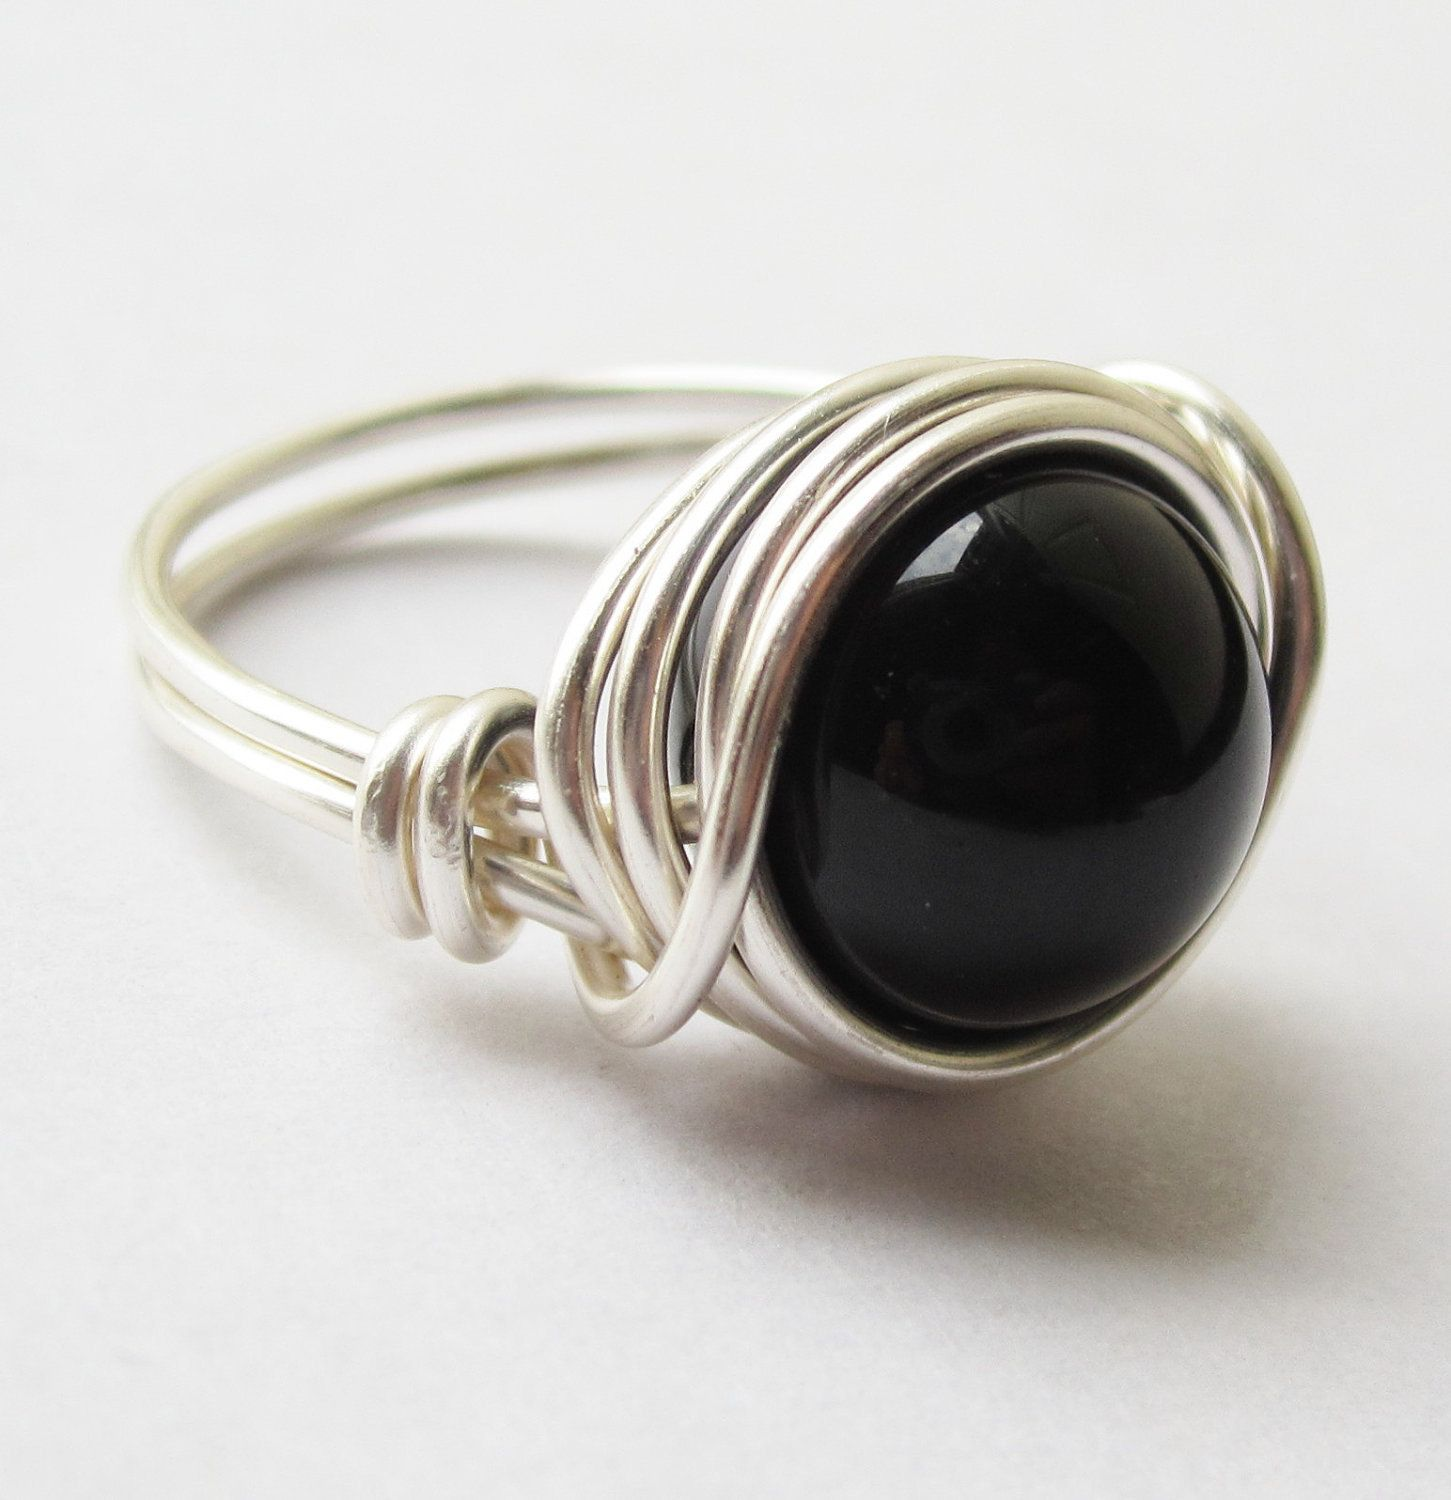 Large Black Gemstone Ring - Silver and Black Agate Cocktail Ring - Jewelry. $14.40, via Etsy.